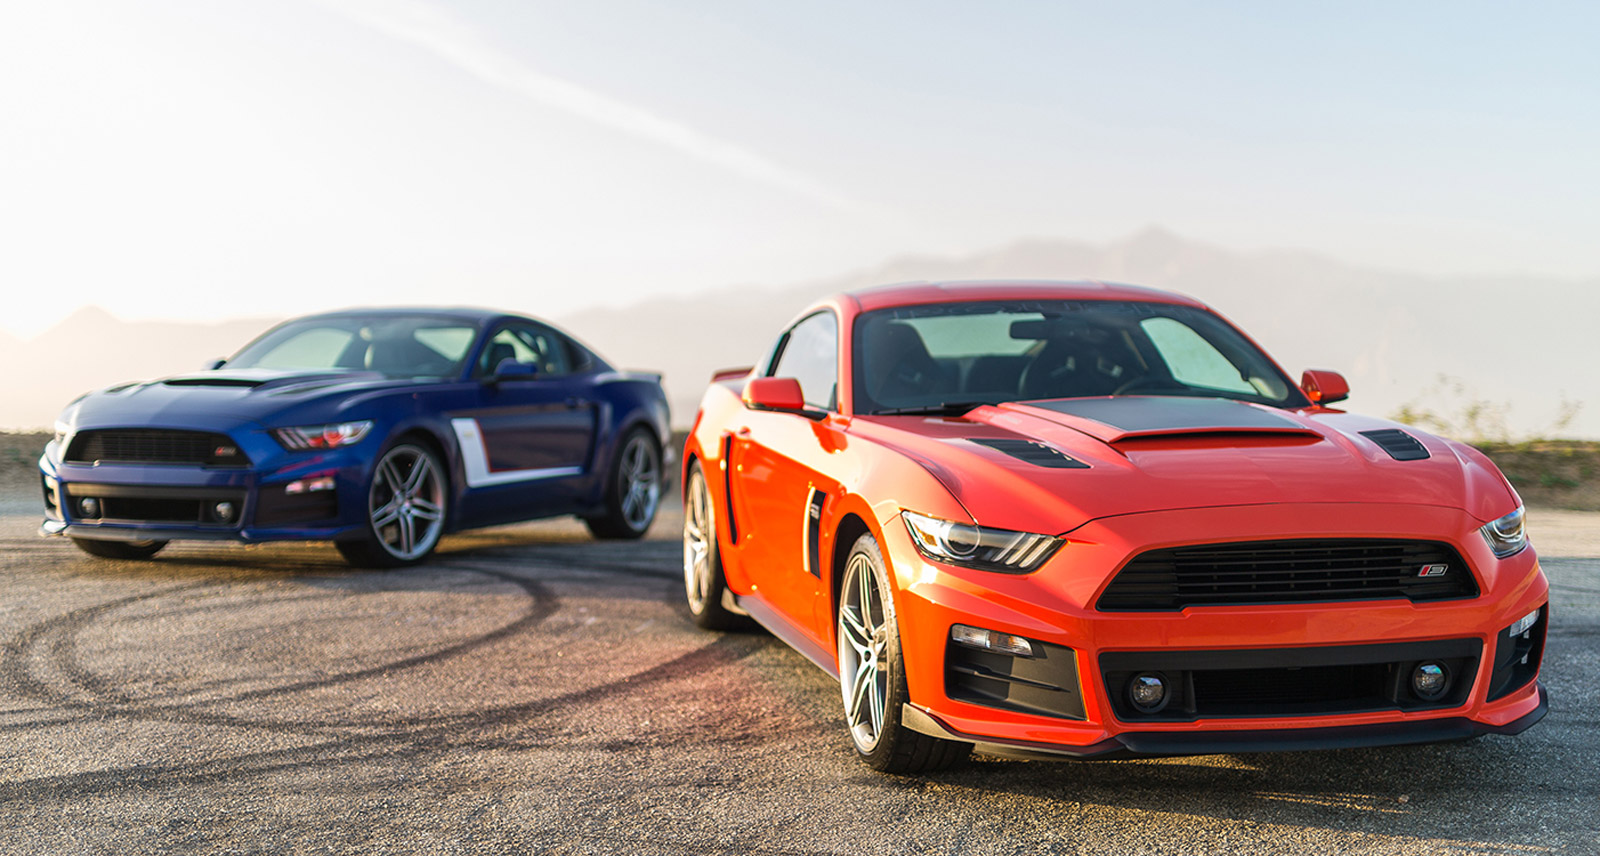 2015 roush rs3 mustang delivers 670 hp and 545 lb ft video. Black Bedroom Furniture Sets. Home Design Ideas